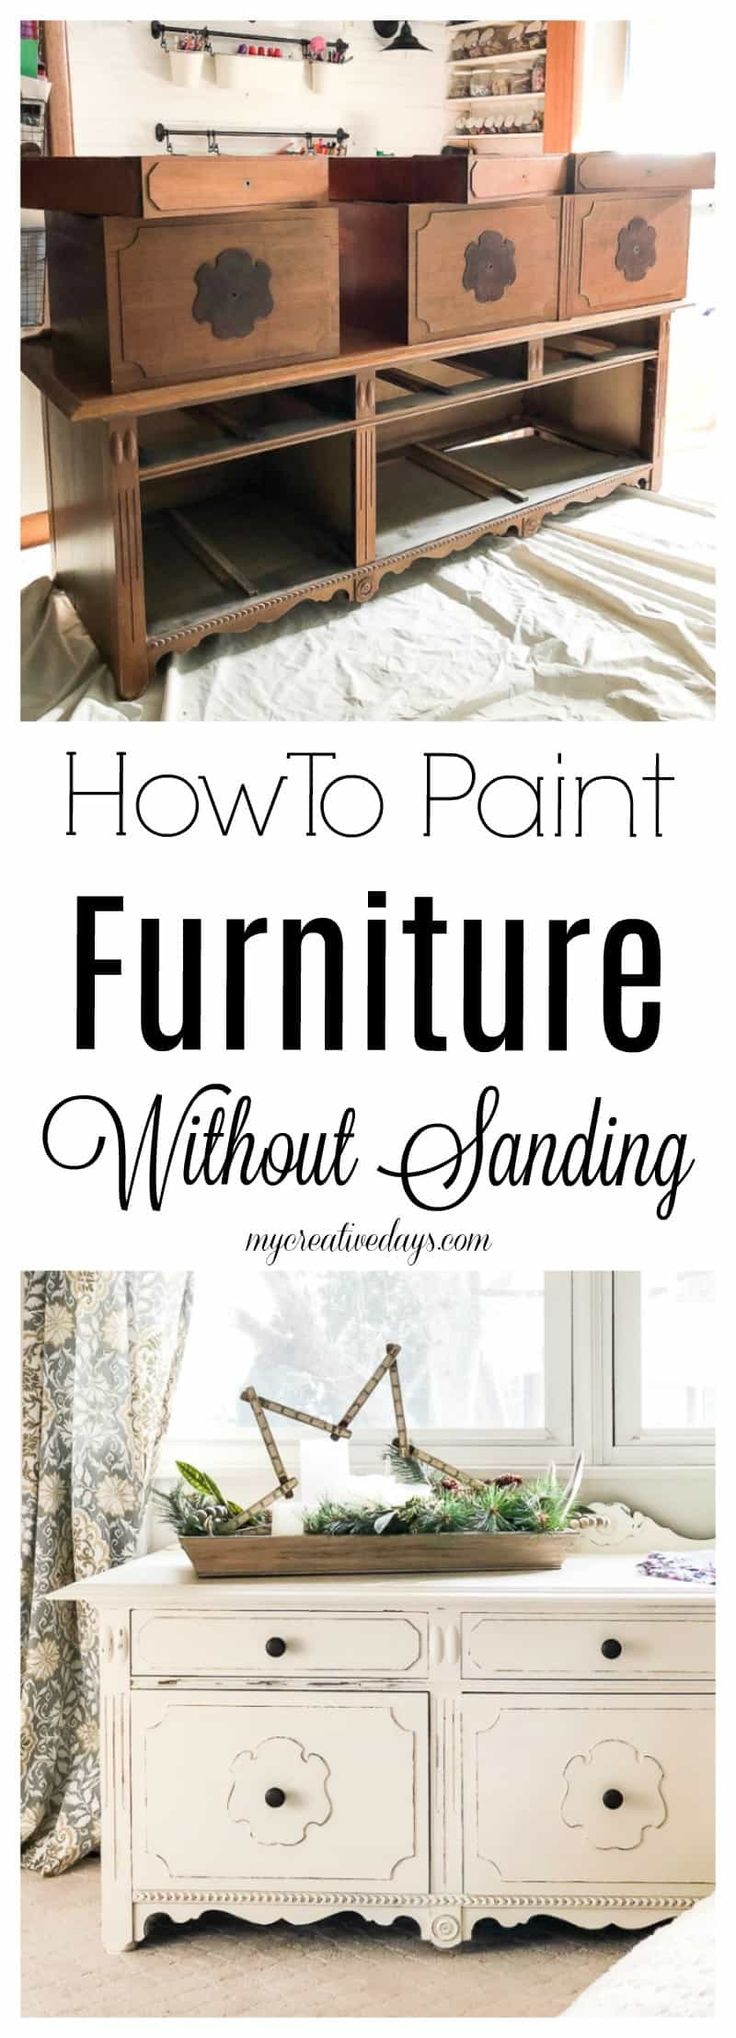 How To Paint Furniture Without Sanding 476